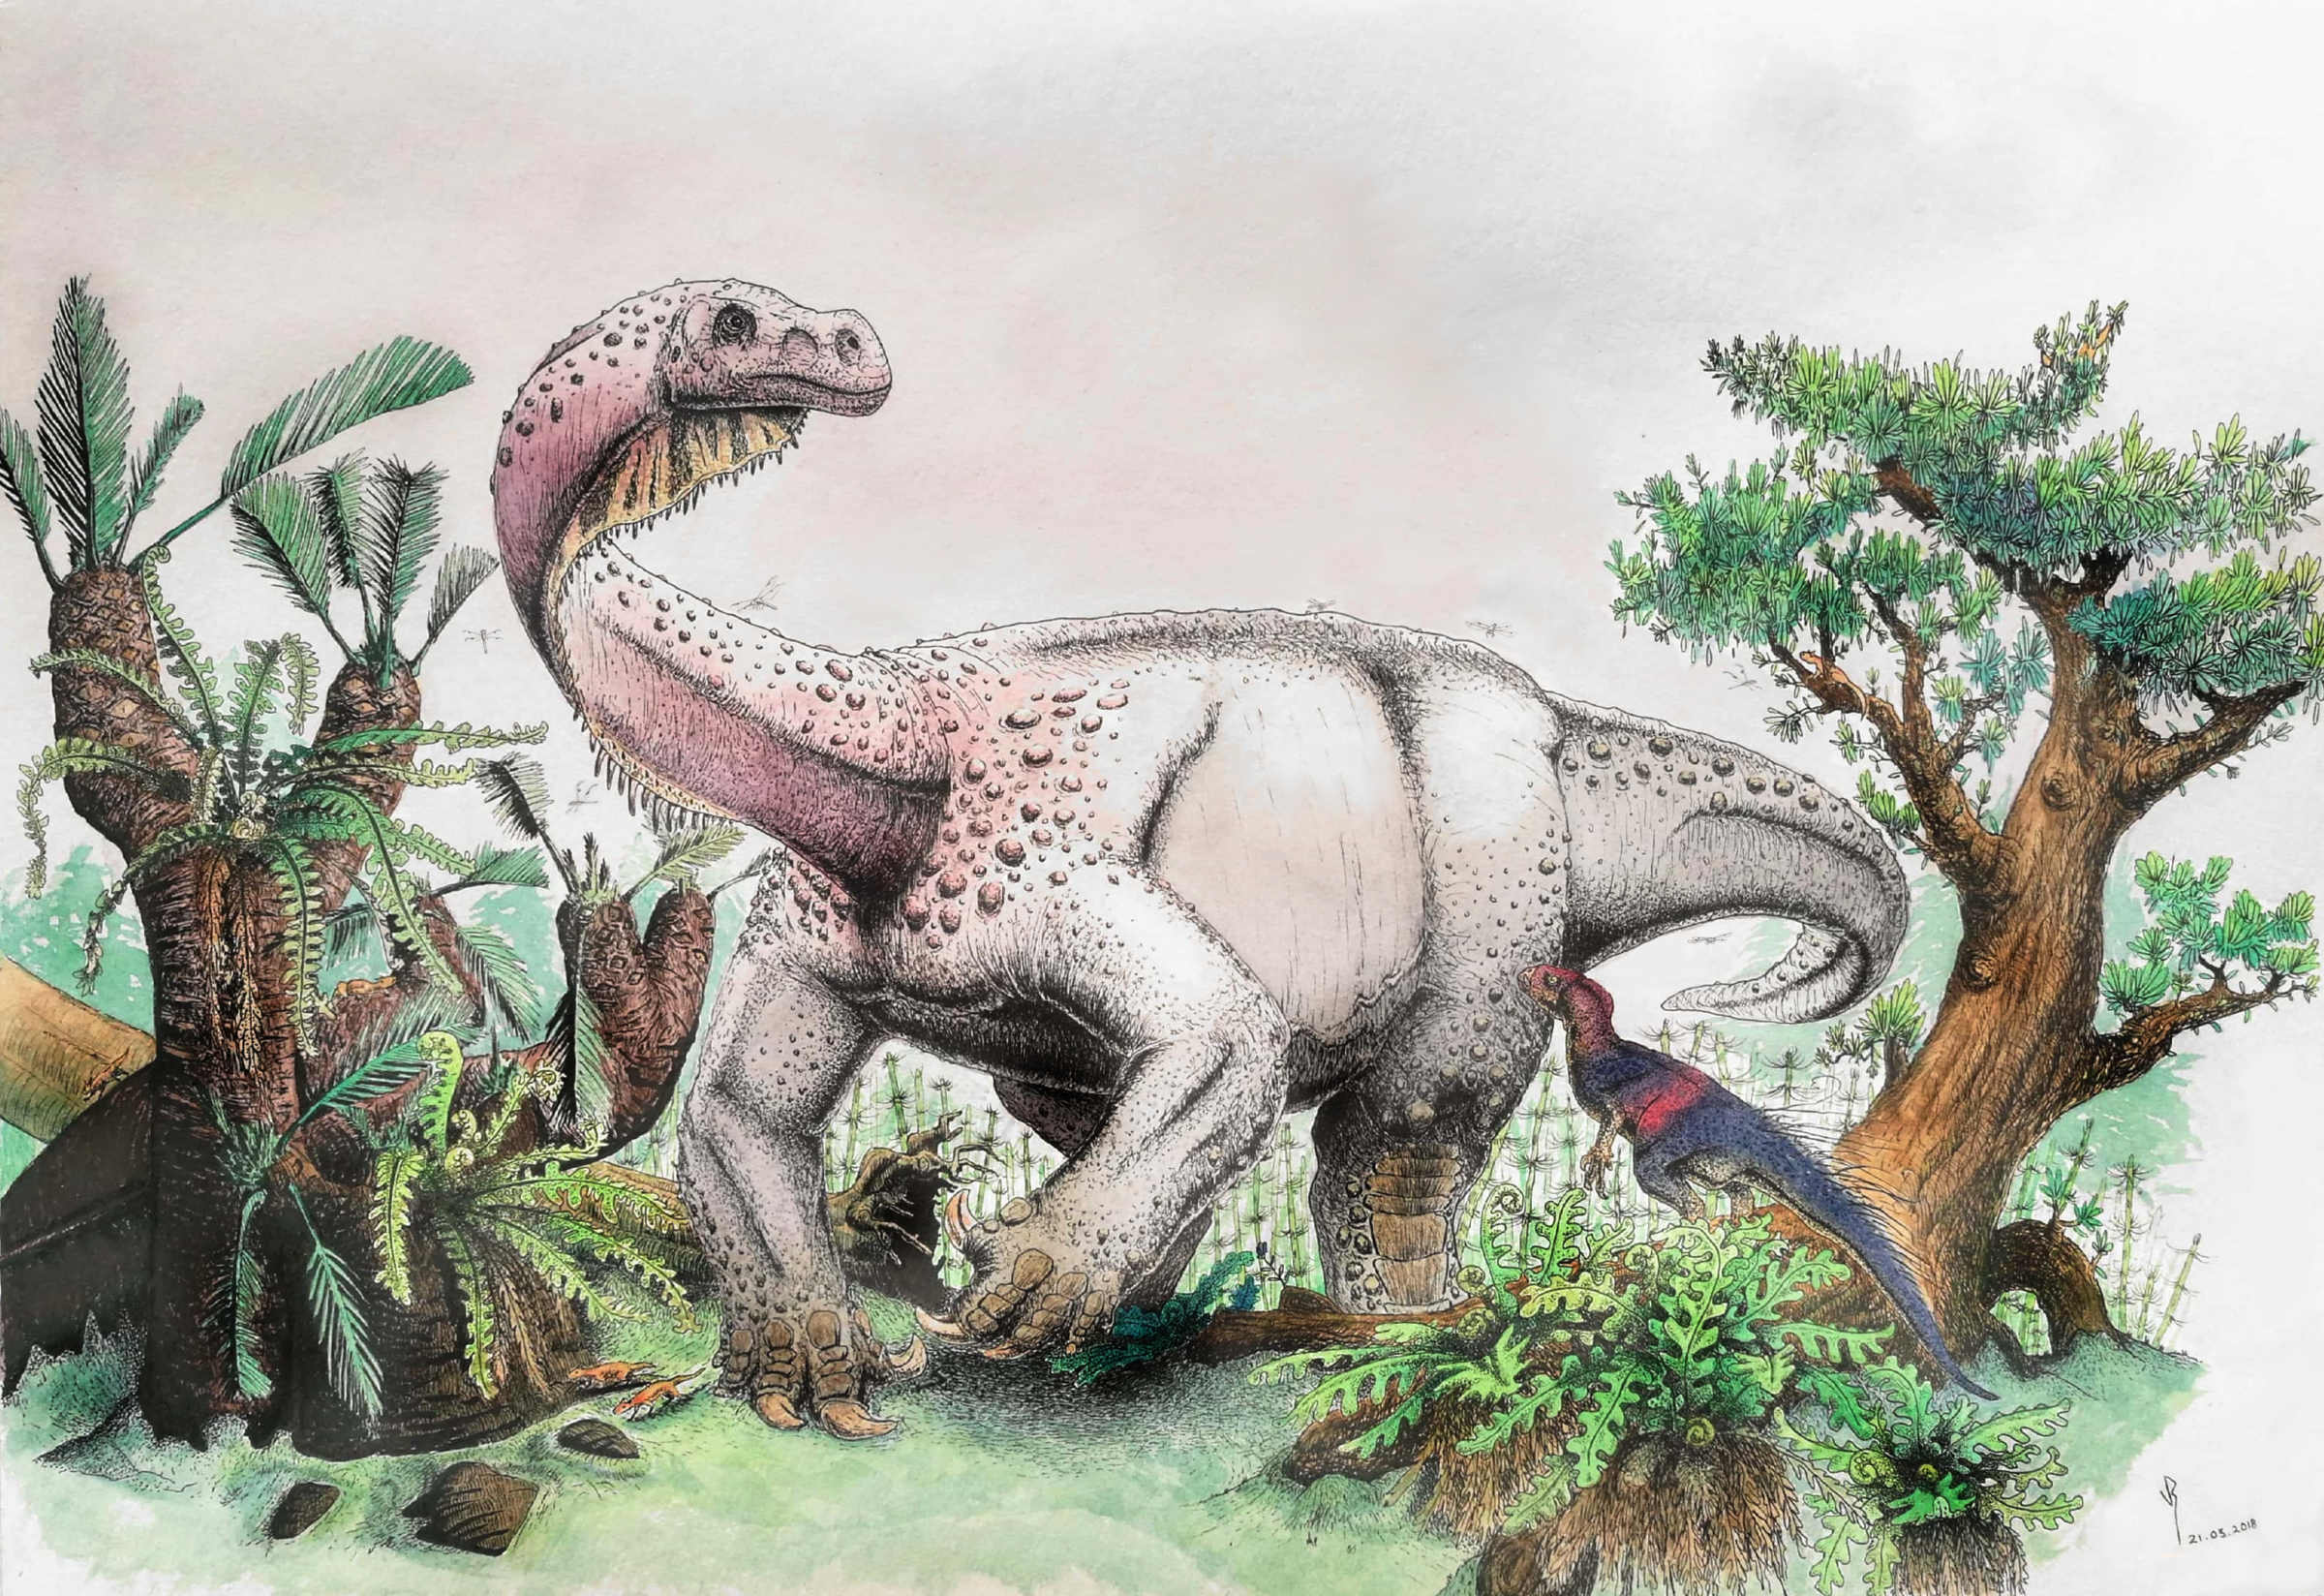 Jurassic giant: Huge new dinosaur species discovered in Africa